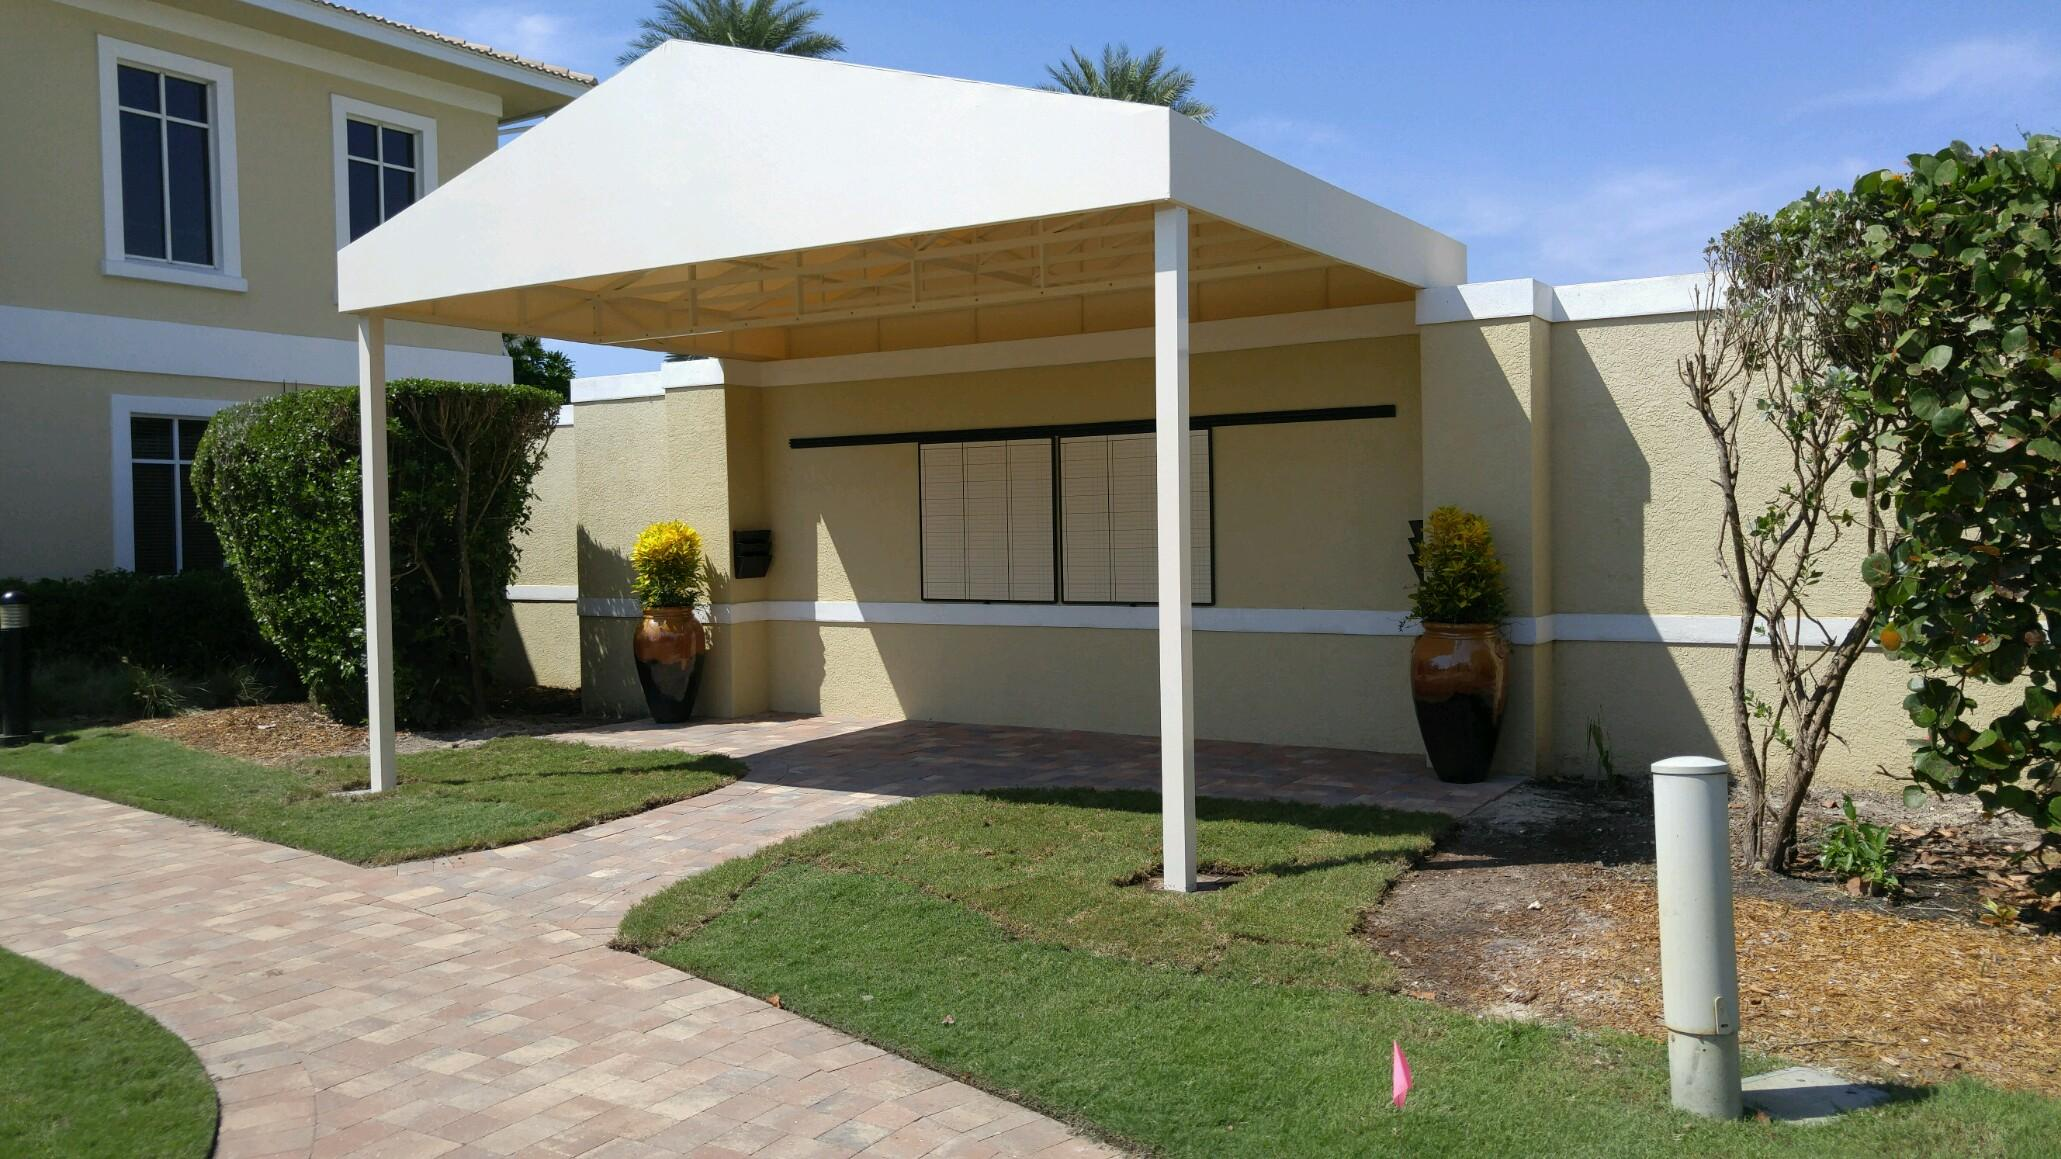 commercial awnings naples Coastal Canvas & Awnings - Fort Myers, Naples, SWFL